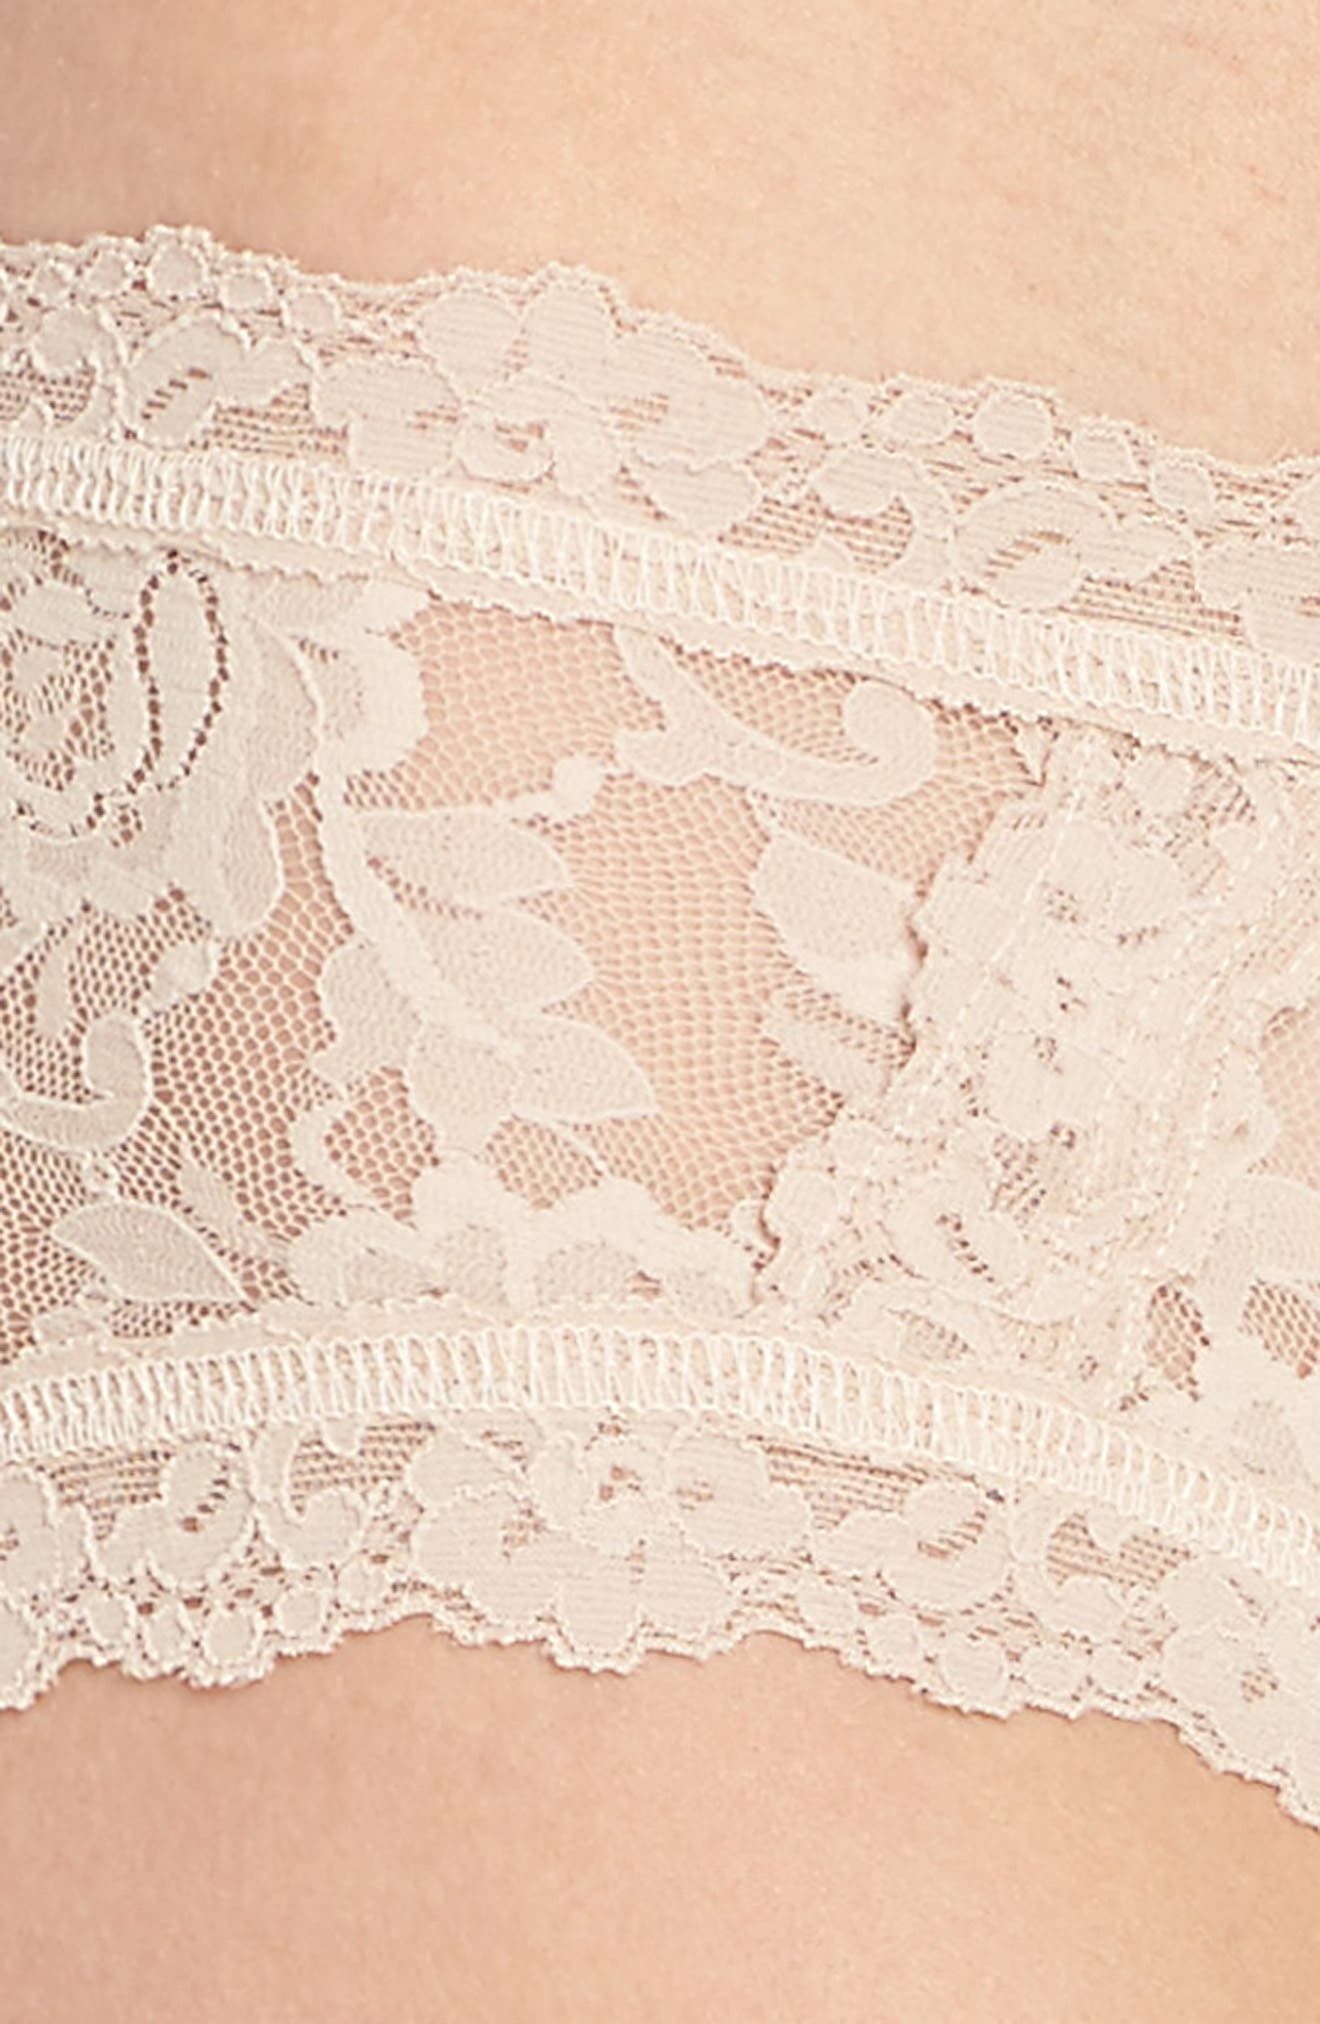 Floral Stretch Lace Girlkini,                             Alternate thumbnail 11, color,